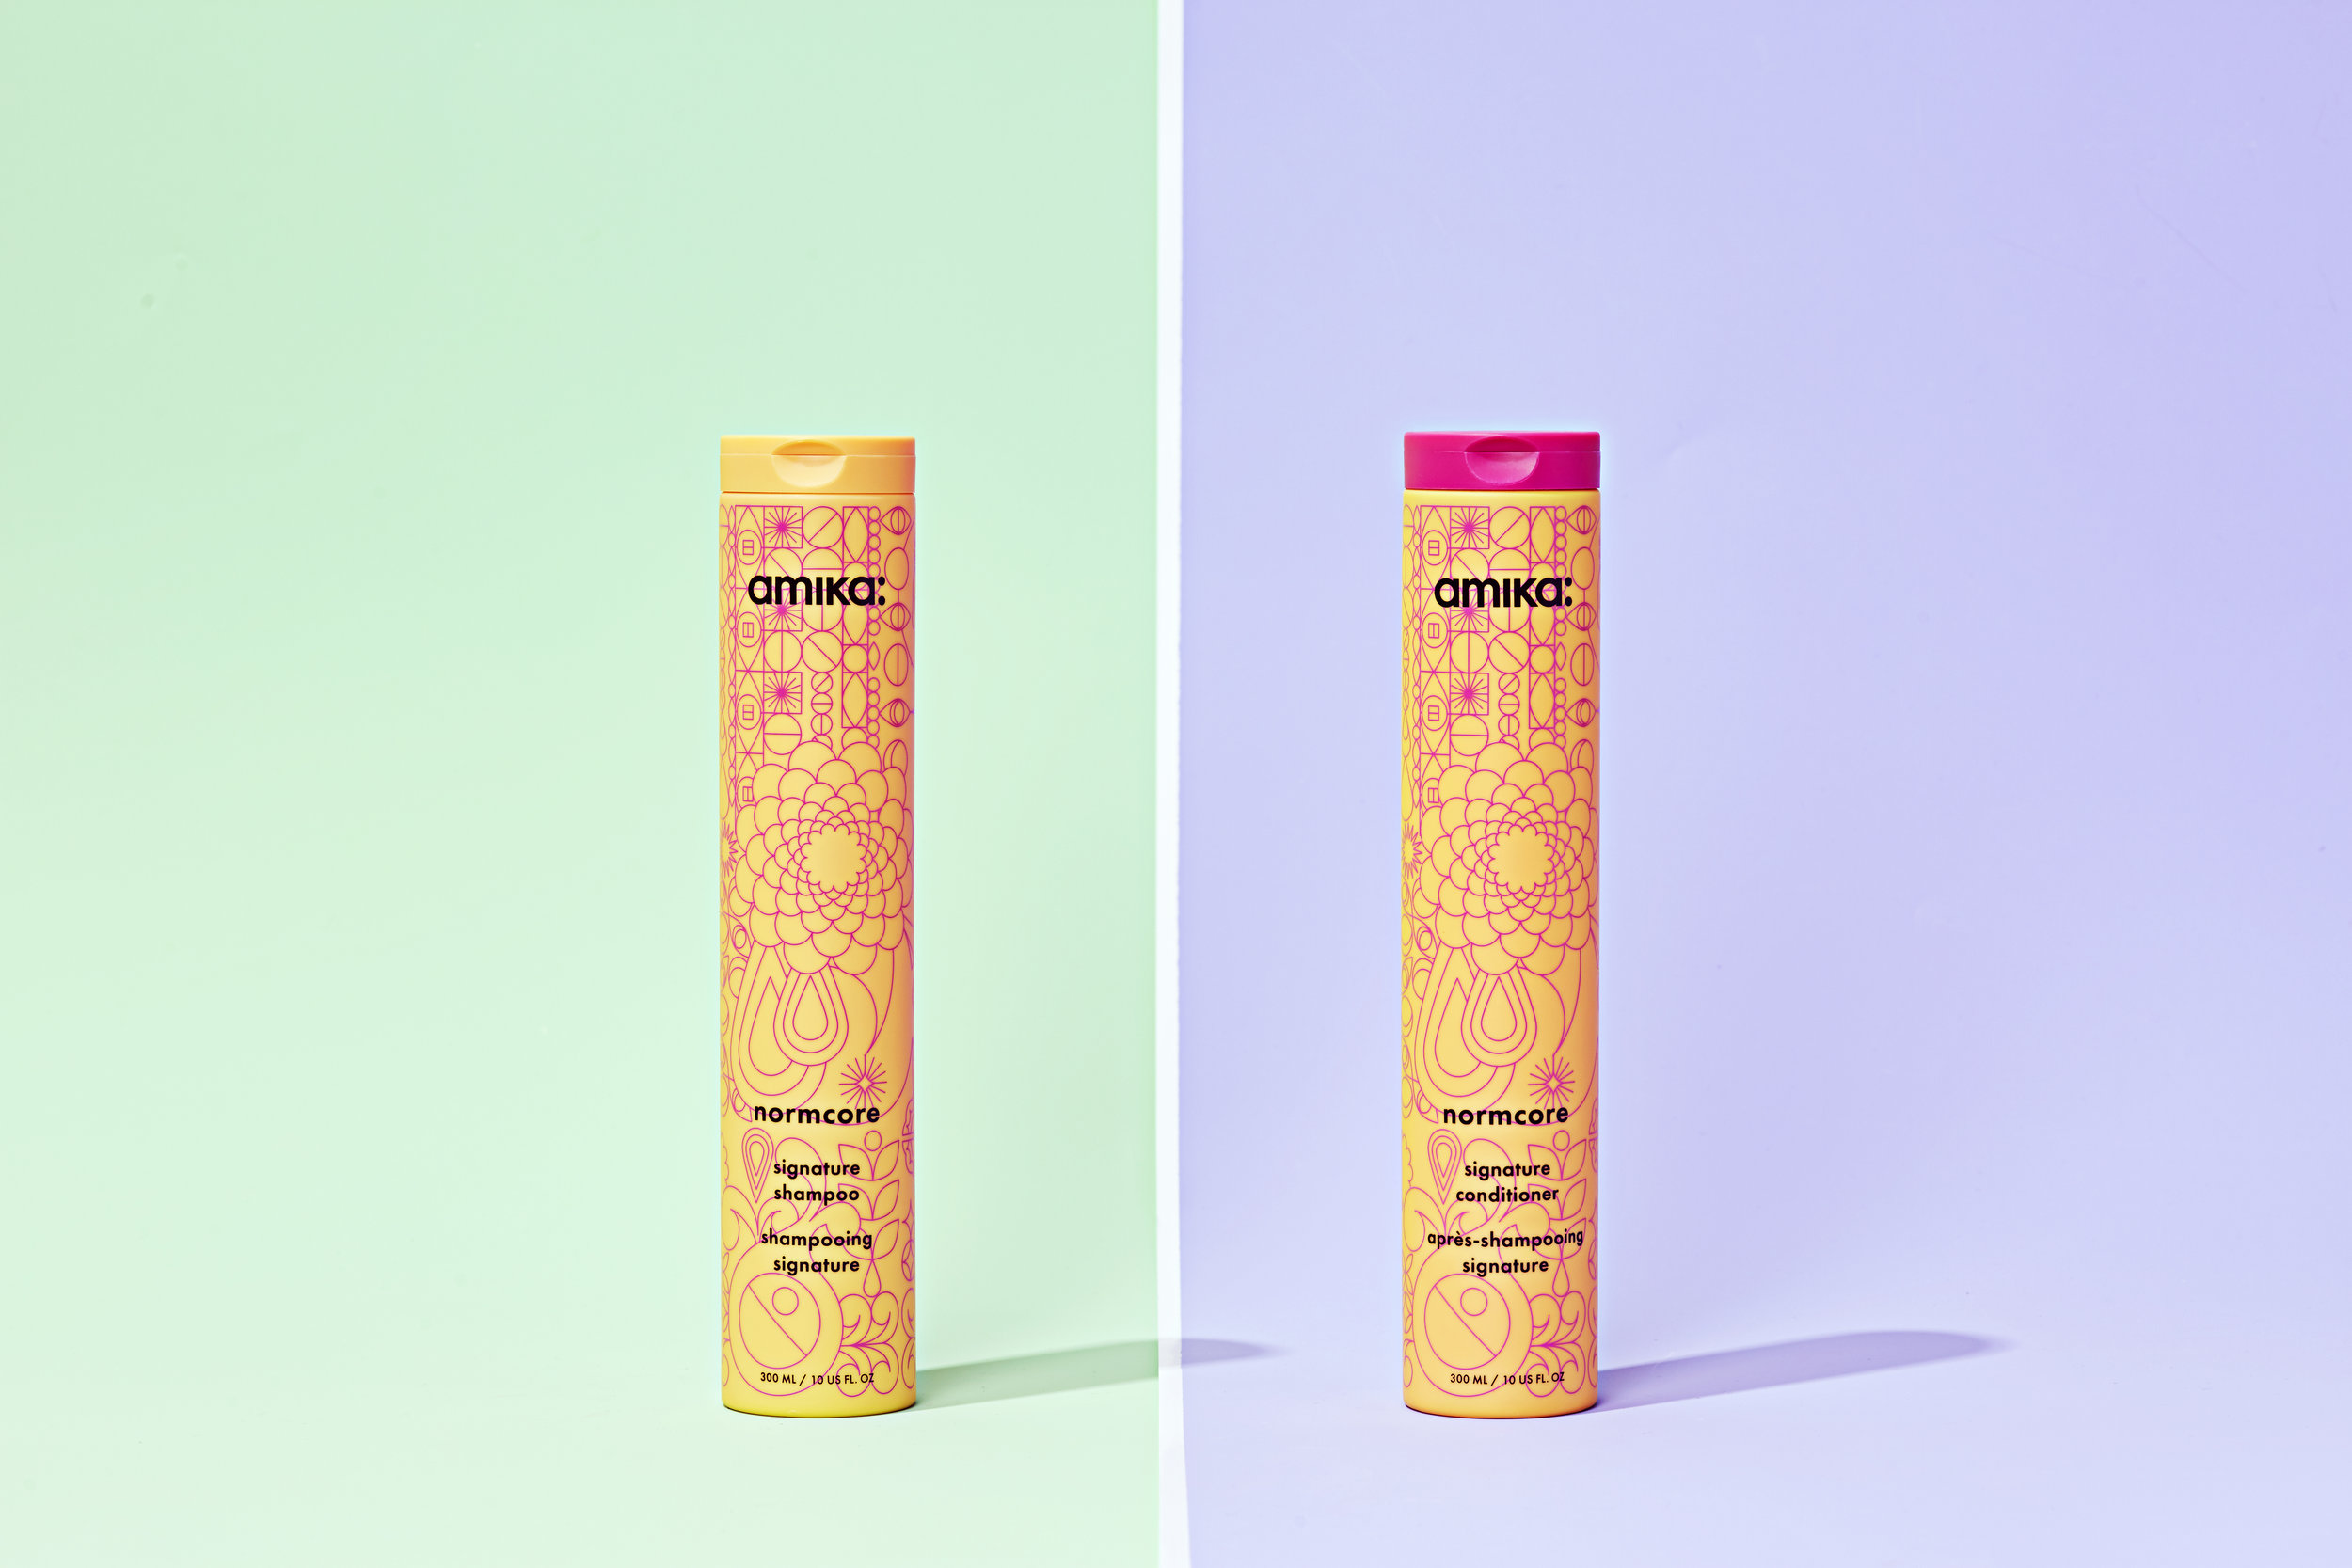 AMIKA_MICHAELPOPP_MAY2018_SIGNATURE_SHAMPOOCONDITIONER.jpg